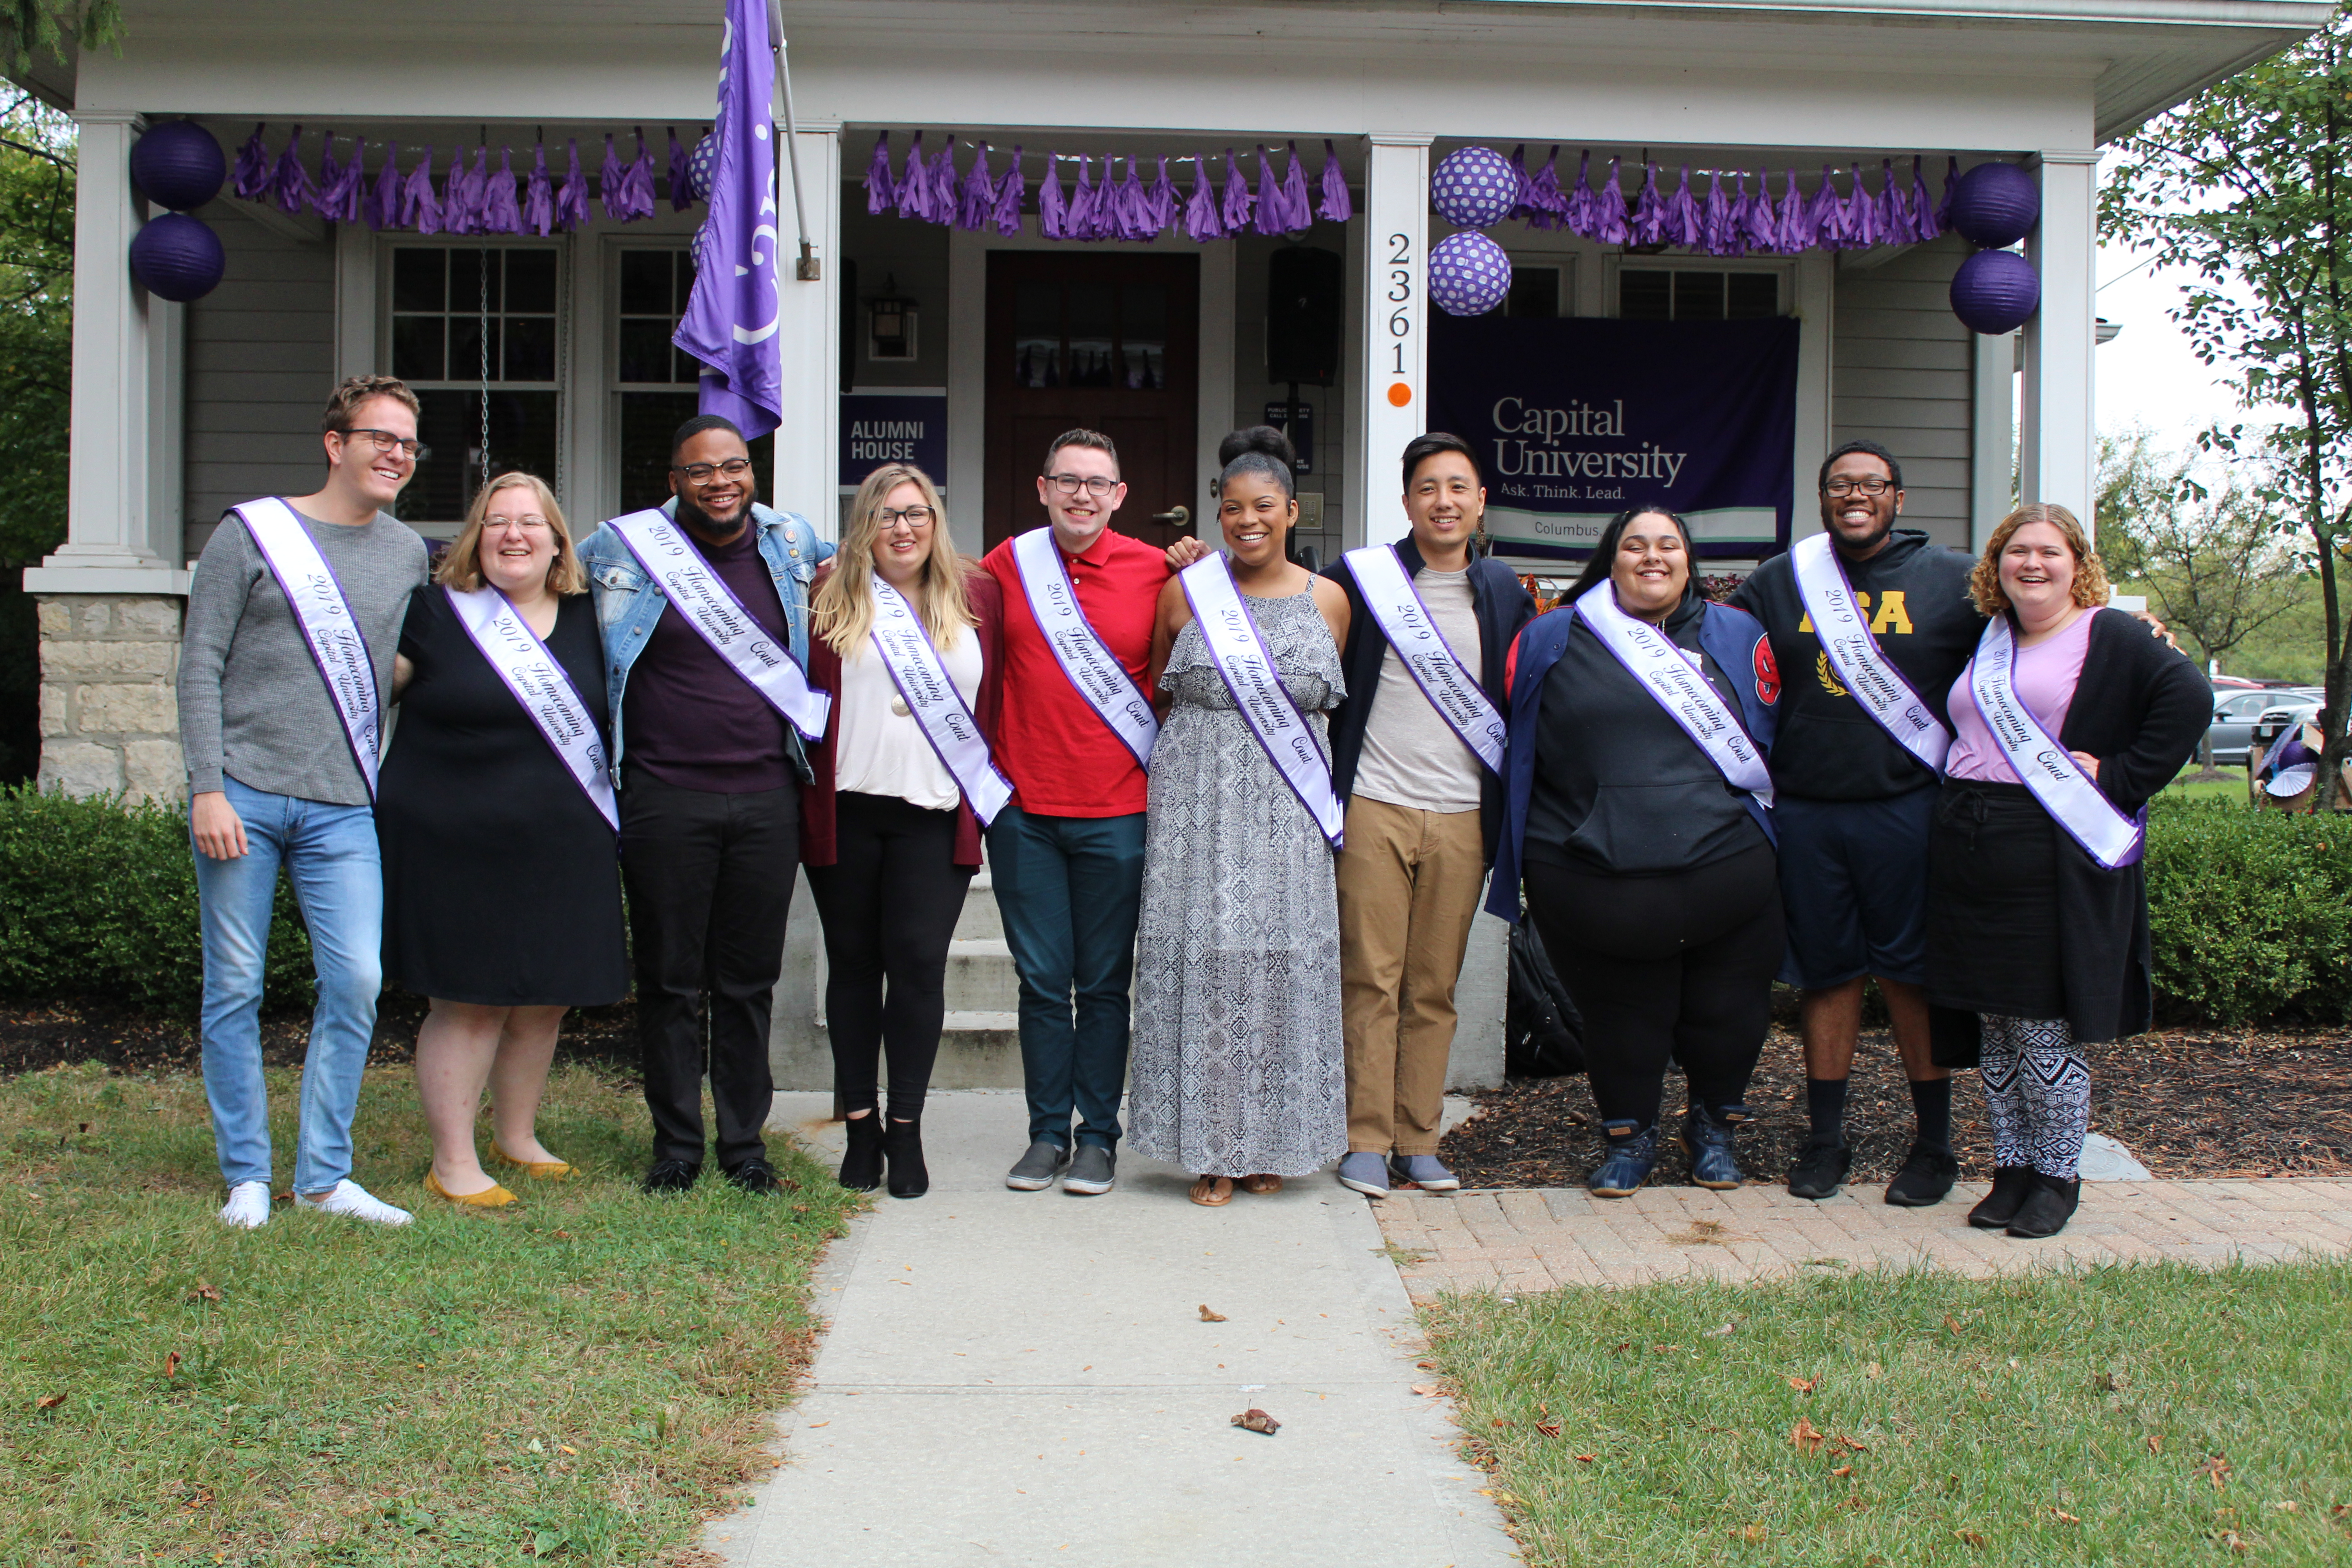 Get to know your 2019 Homecoming Court